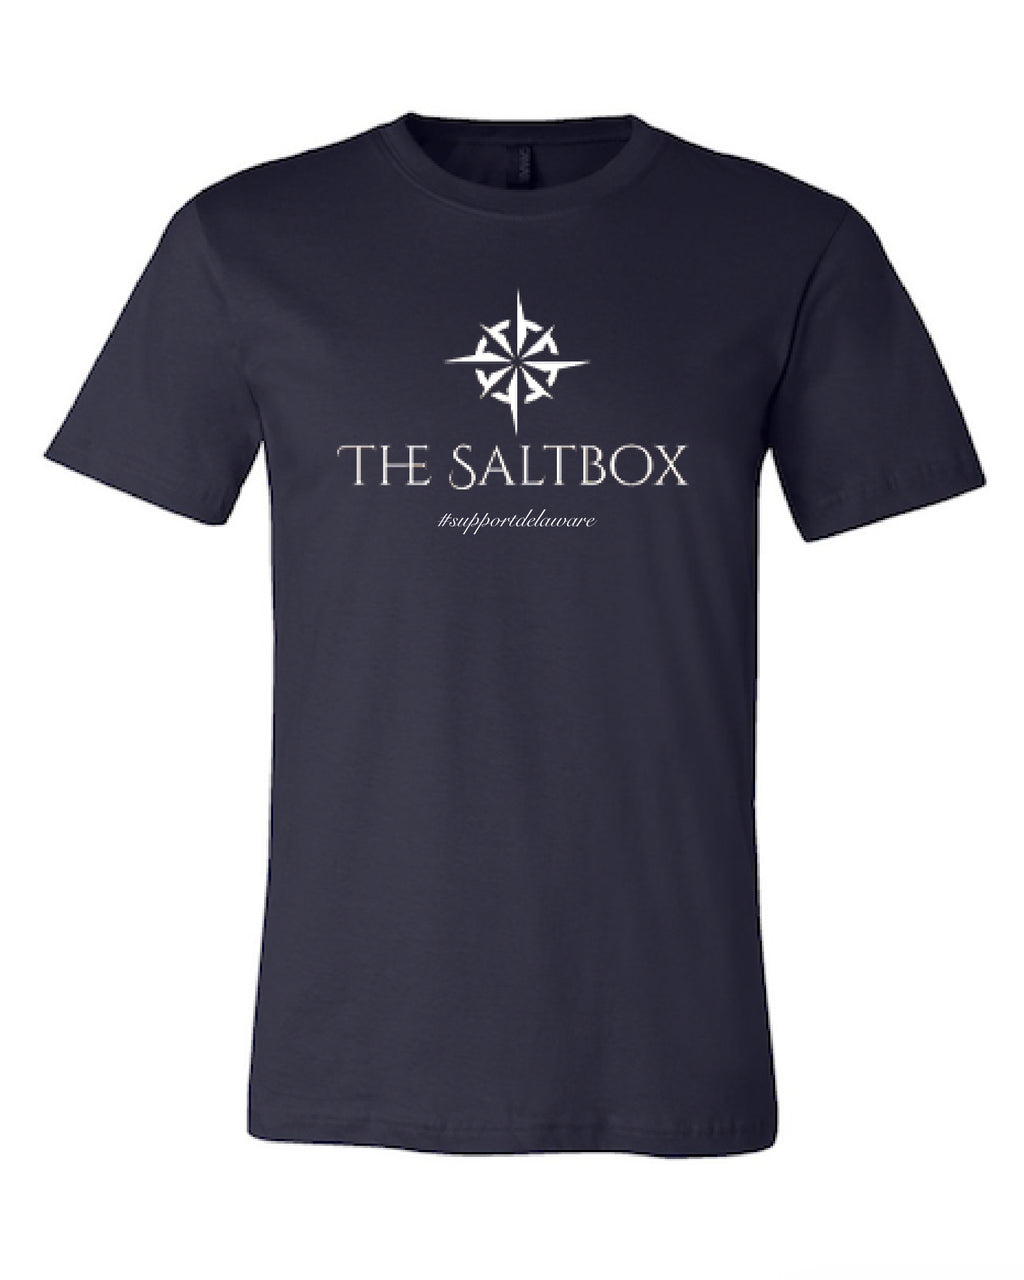 The Saltbox Gift Shop